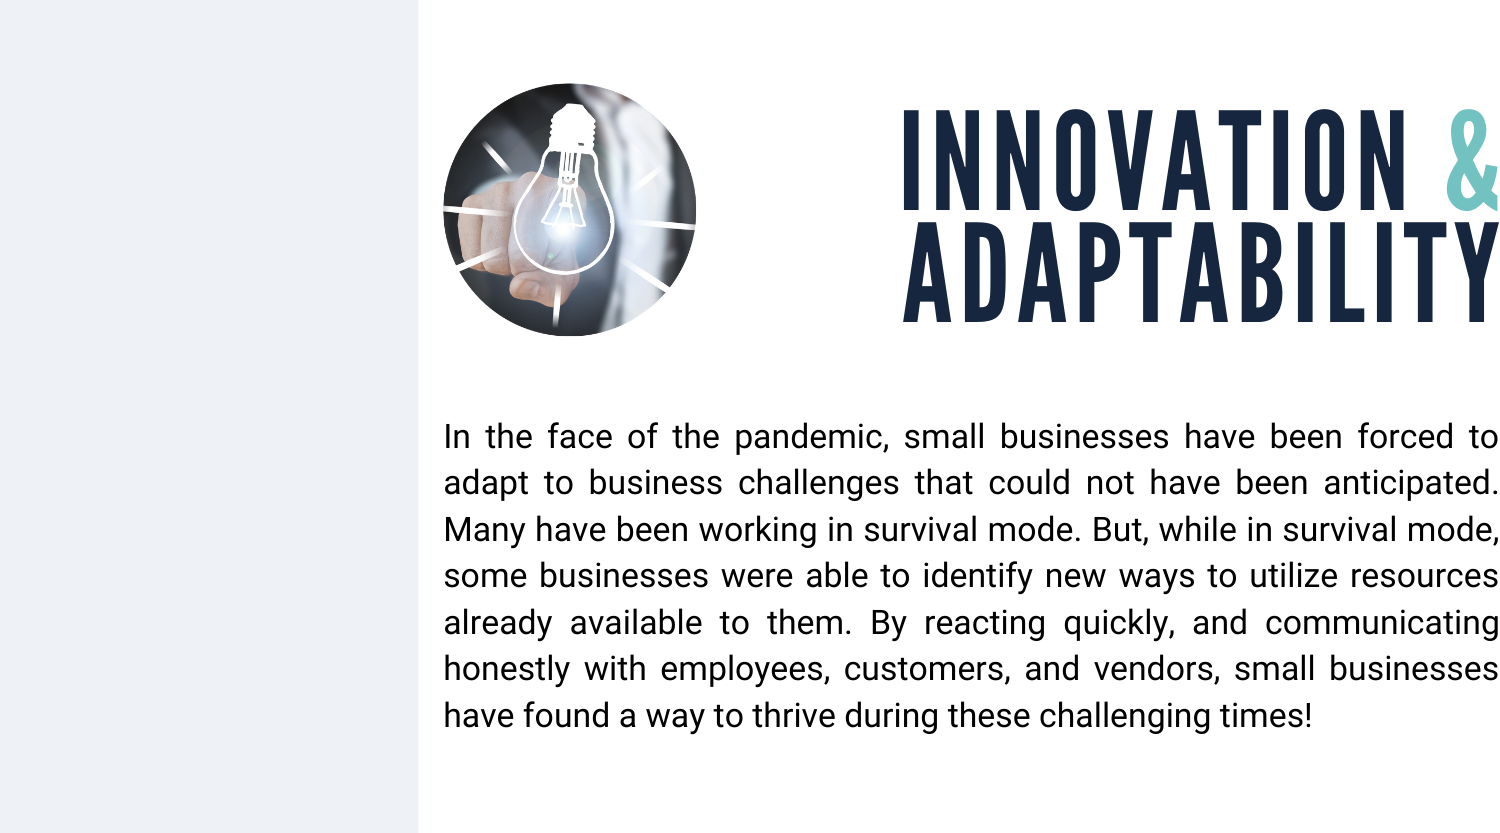 Innovation & Adaptability: Overcoming Unanticipated Business Challenges